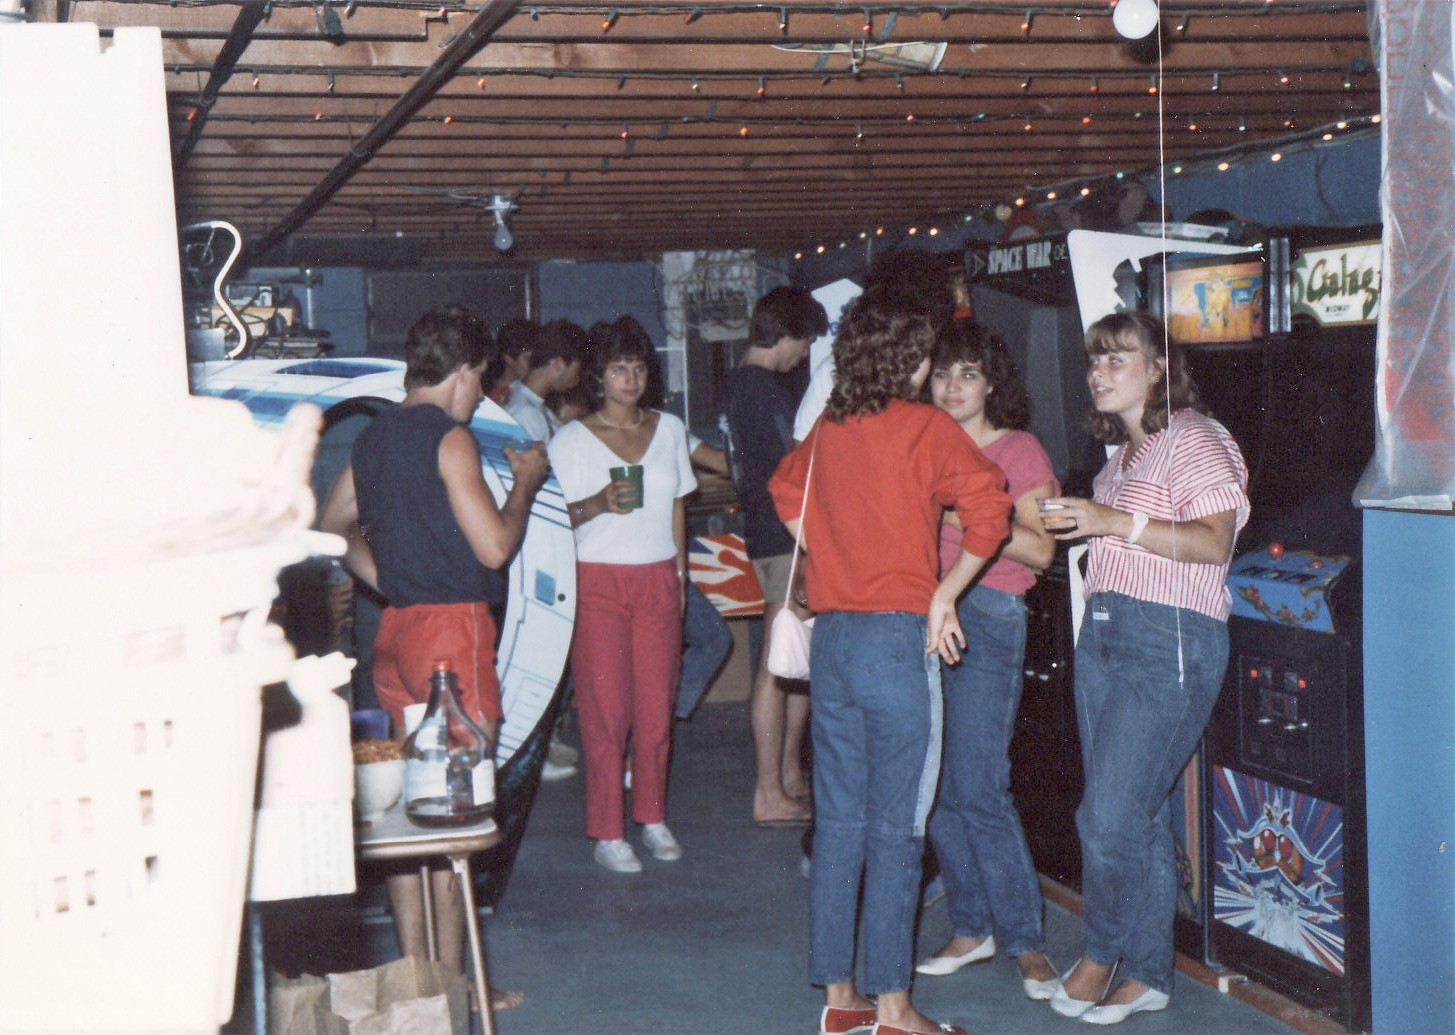 A Home Basement Arcade In Upstate New York 1985 Flickr